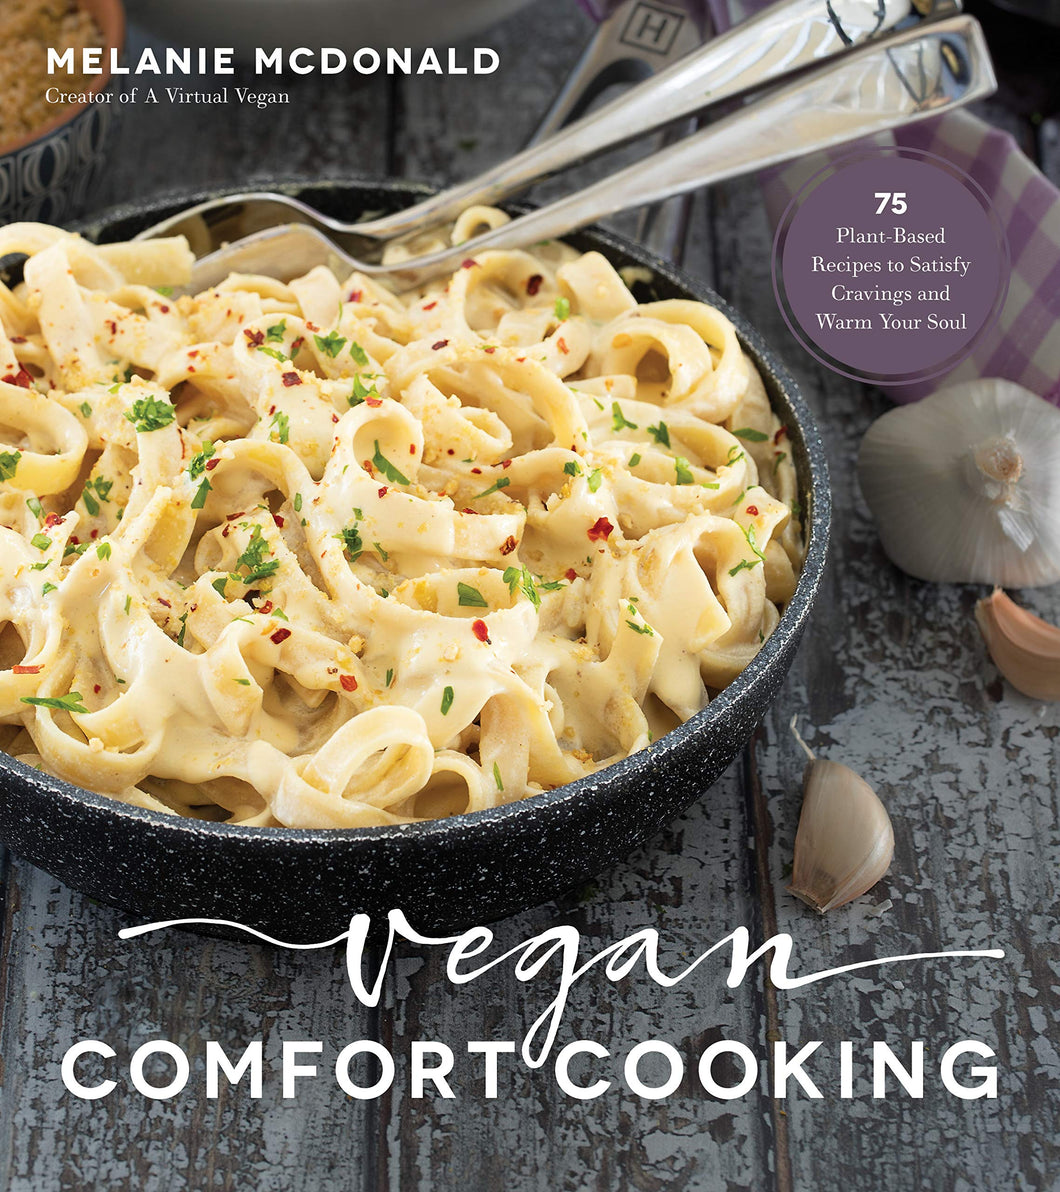 Vegan Comfort Cooking: 75 Plant-Based Recipes to Satisfy Cravings and Warm Your Soul - Tolerant Planet